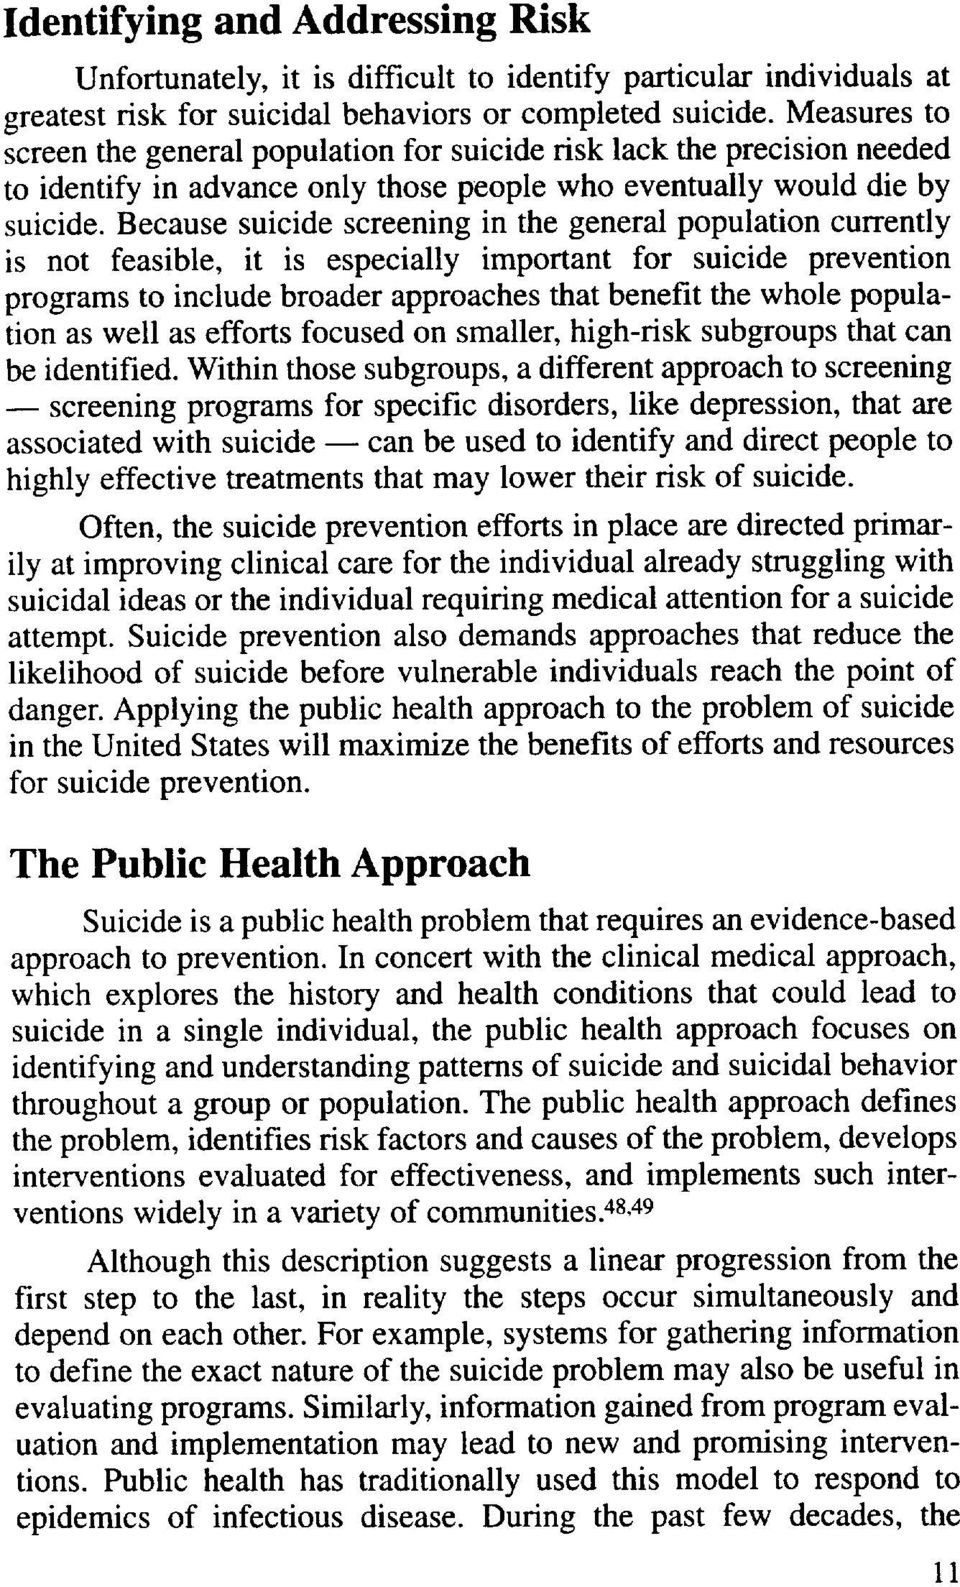 Because suicide screening in the general population currently is not feasible, it is especially important for suicide prevention programs to include broader approaches that benefit the whole